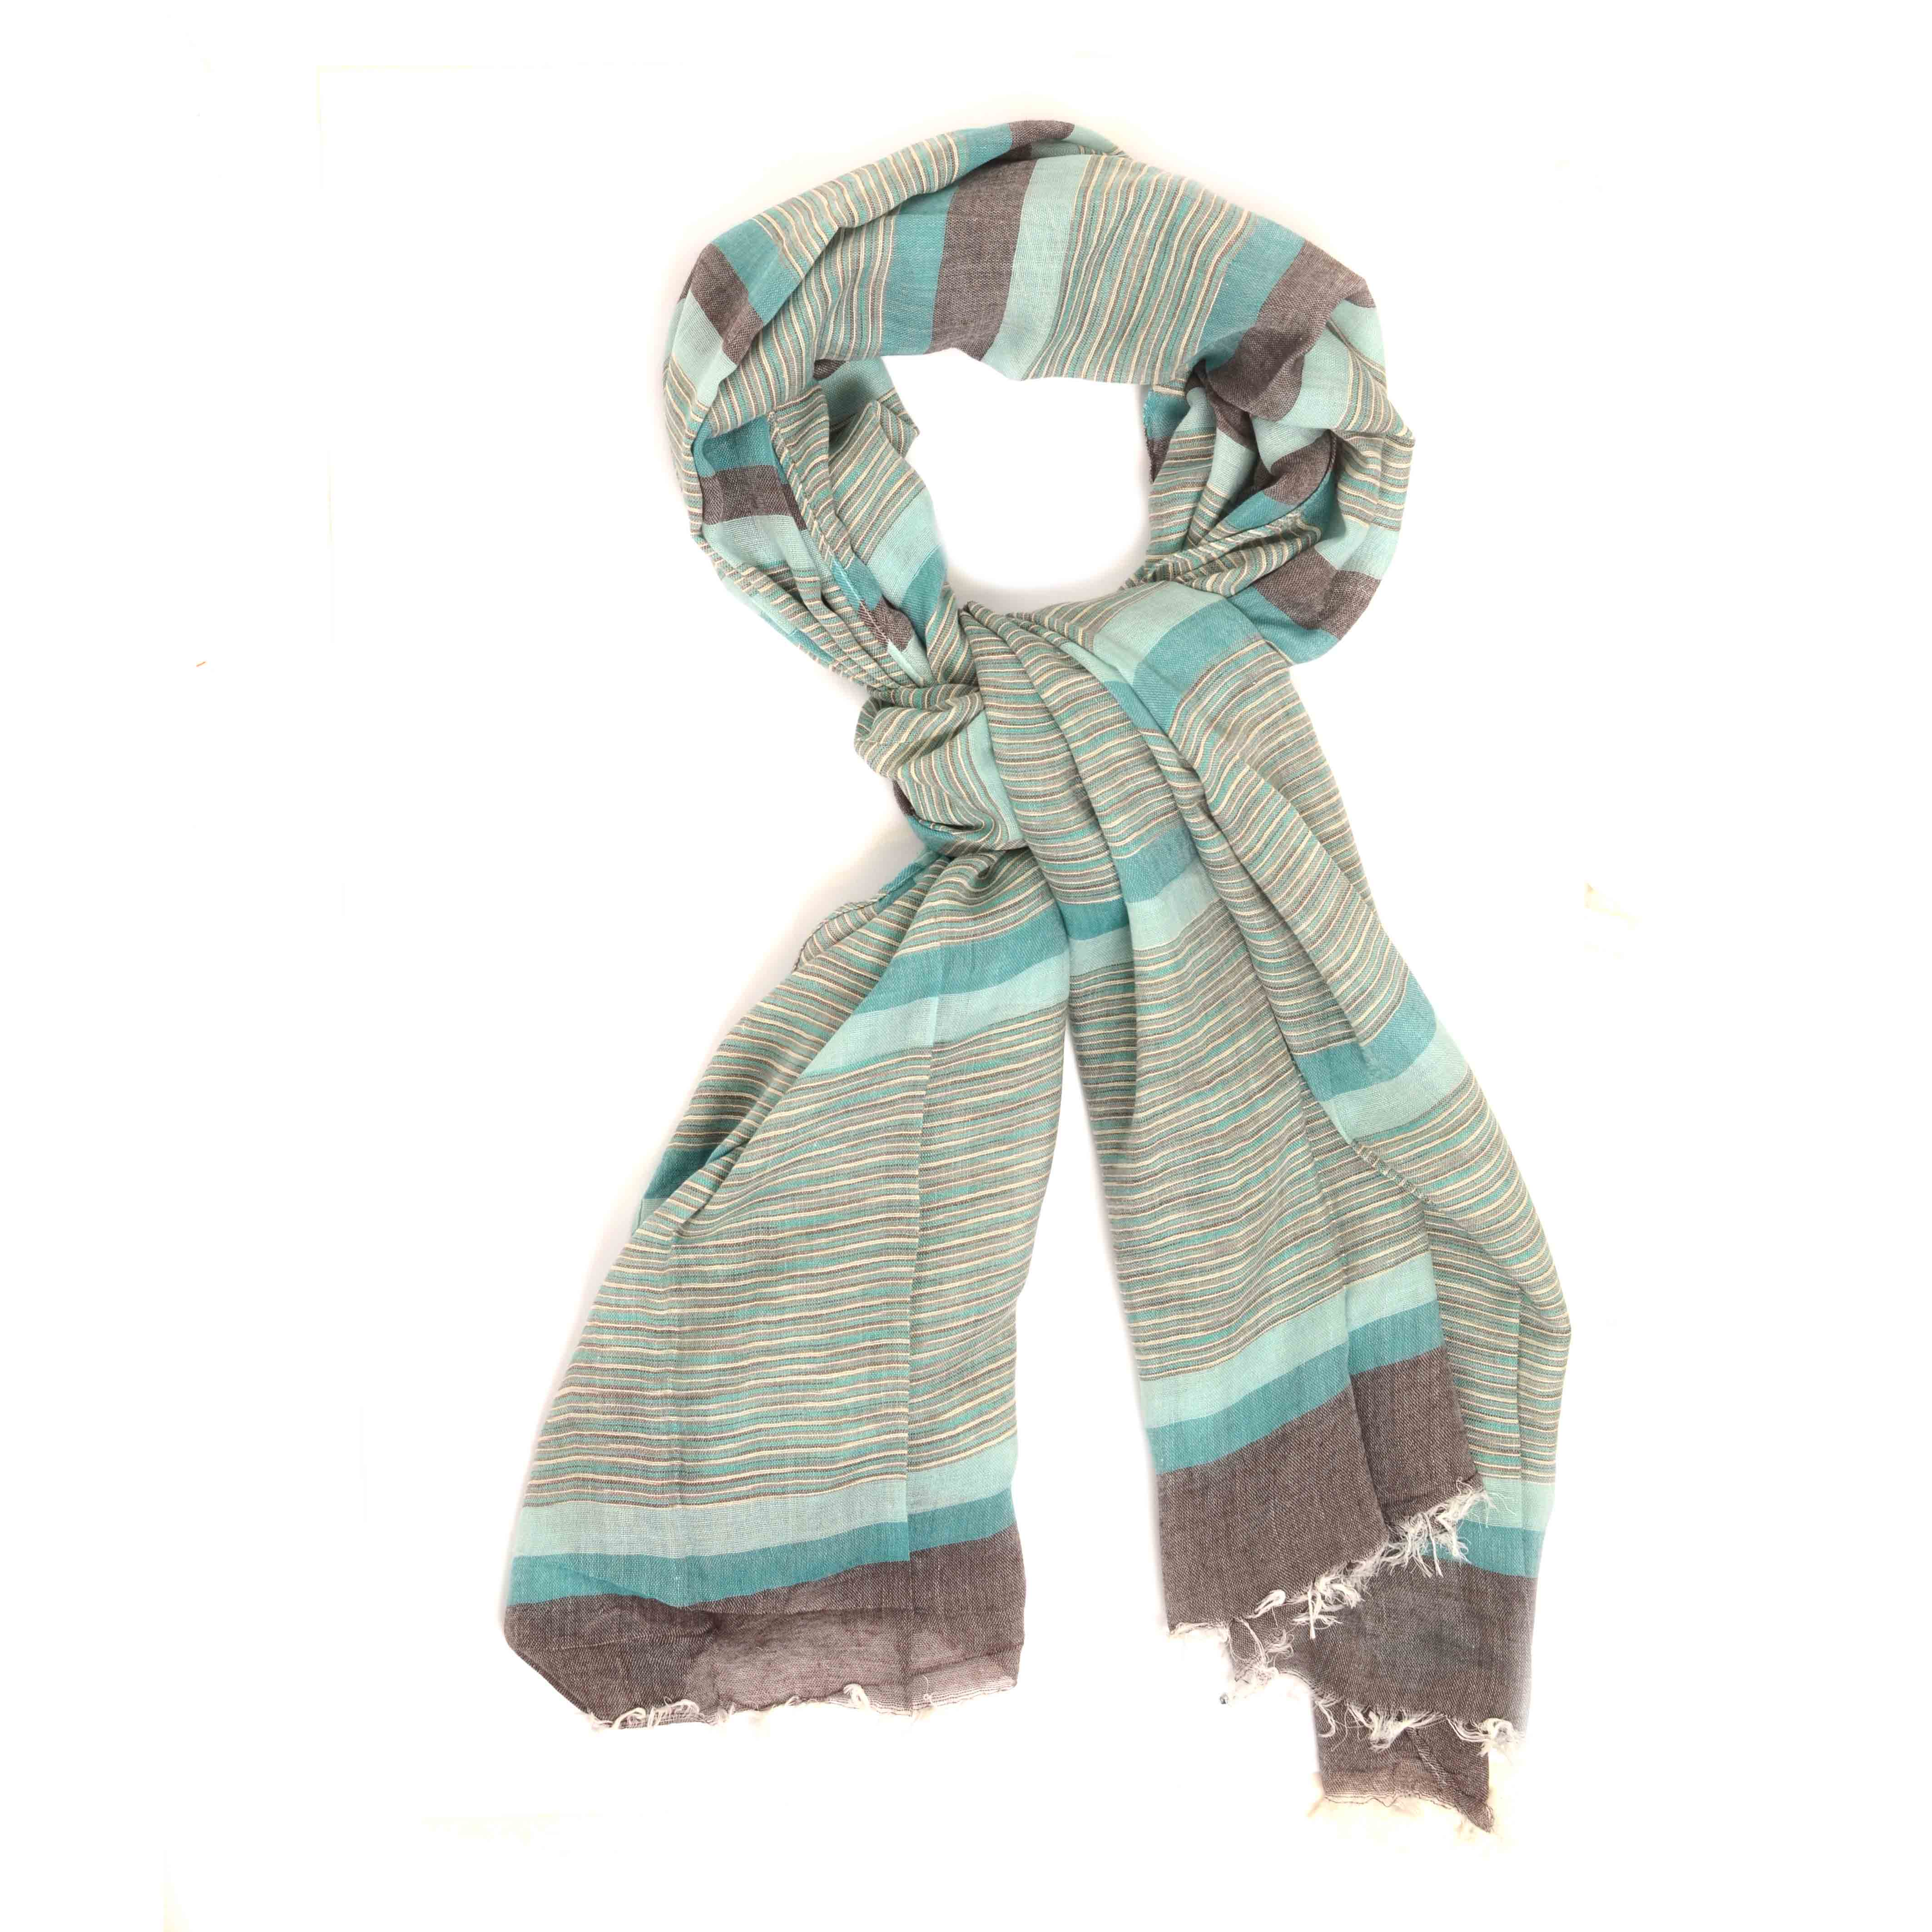 Maceo   Scarf with stripe dessin in grey tints and light blue accents